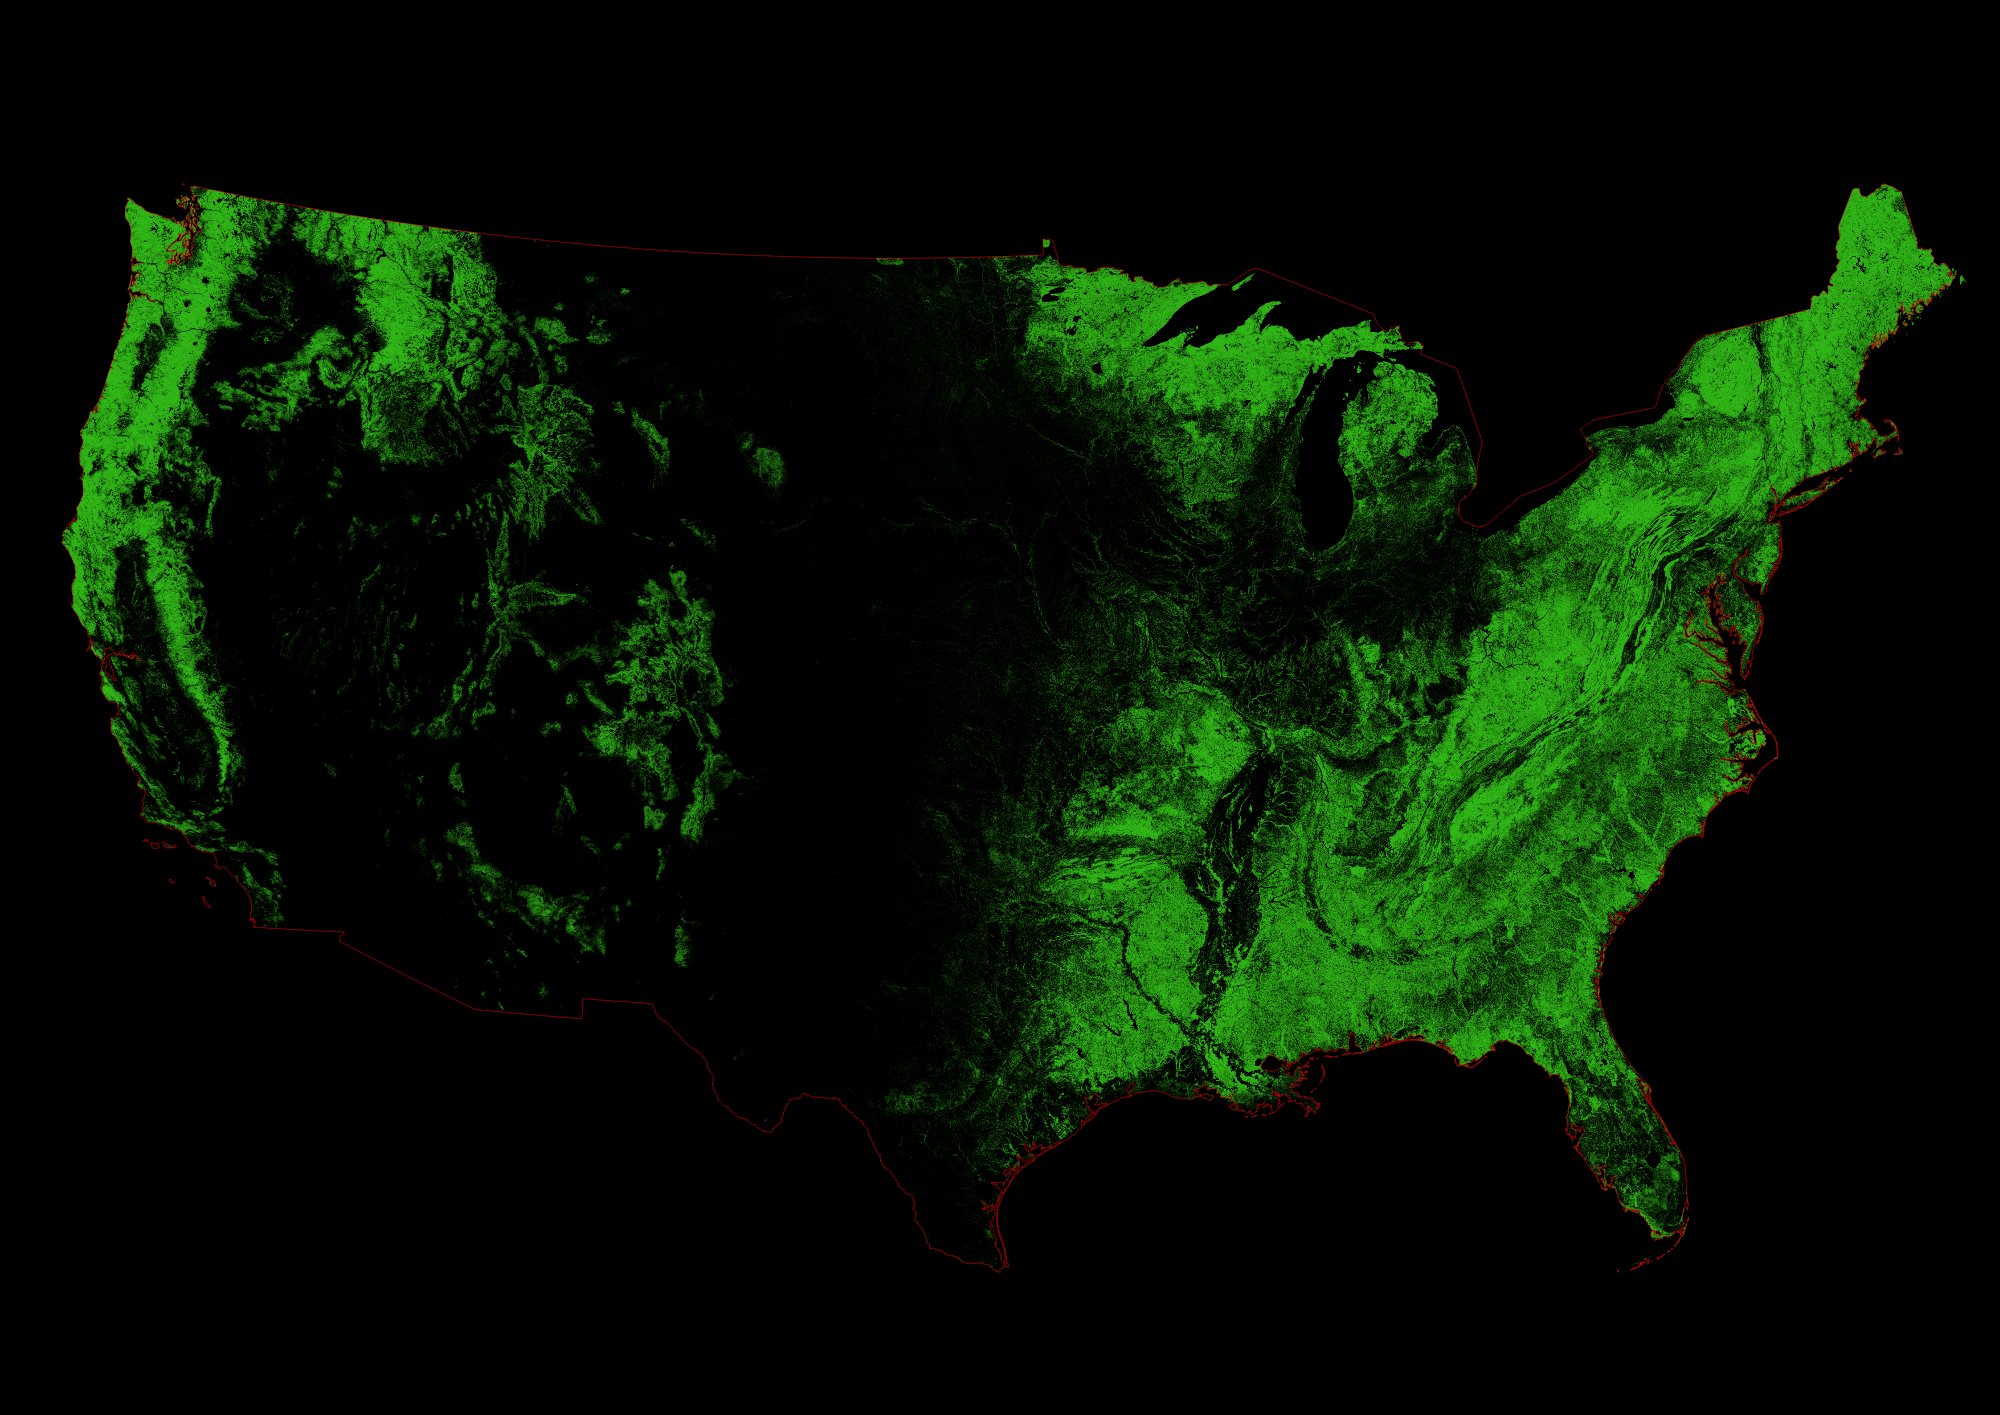 A geographer has turned U.S. topography into works of art with forest cover maps showcasing the rich, green forests spanning the country.